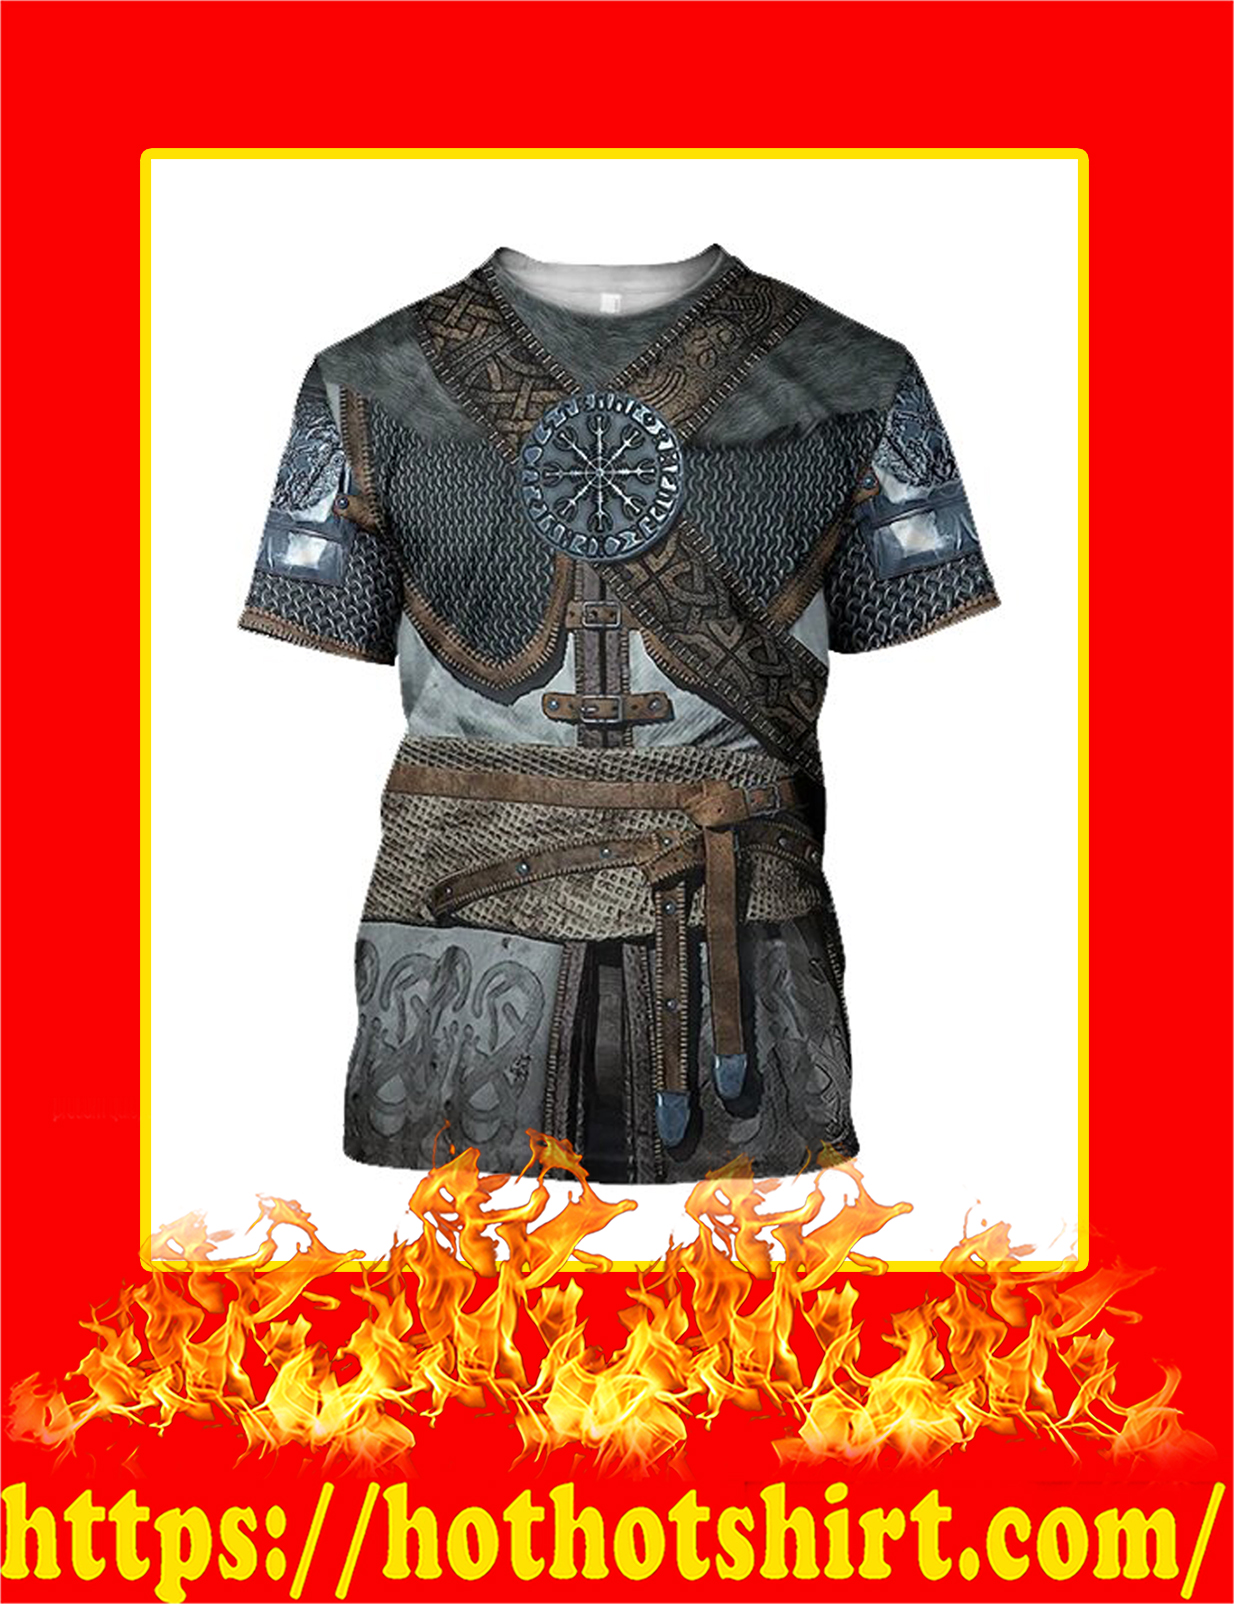 3D All Over Printed Vikings Armor T-Shirt